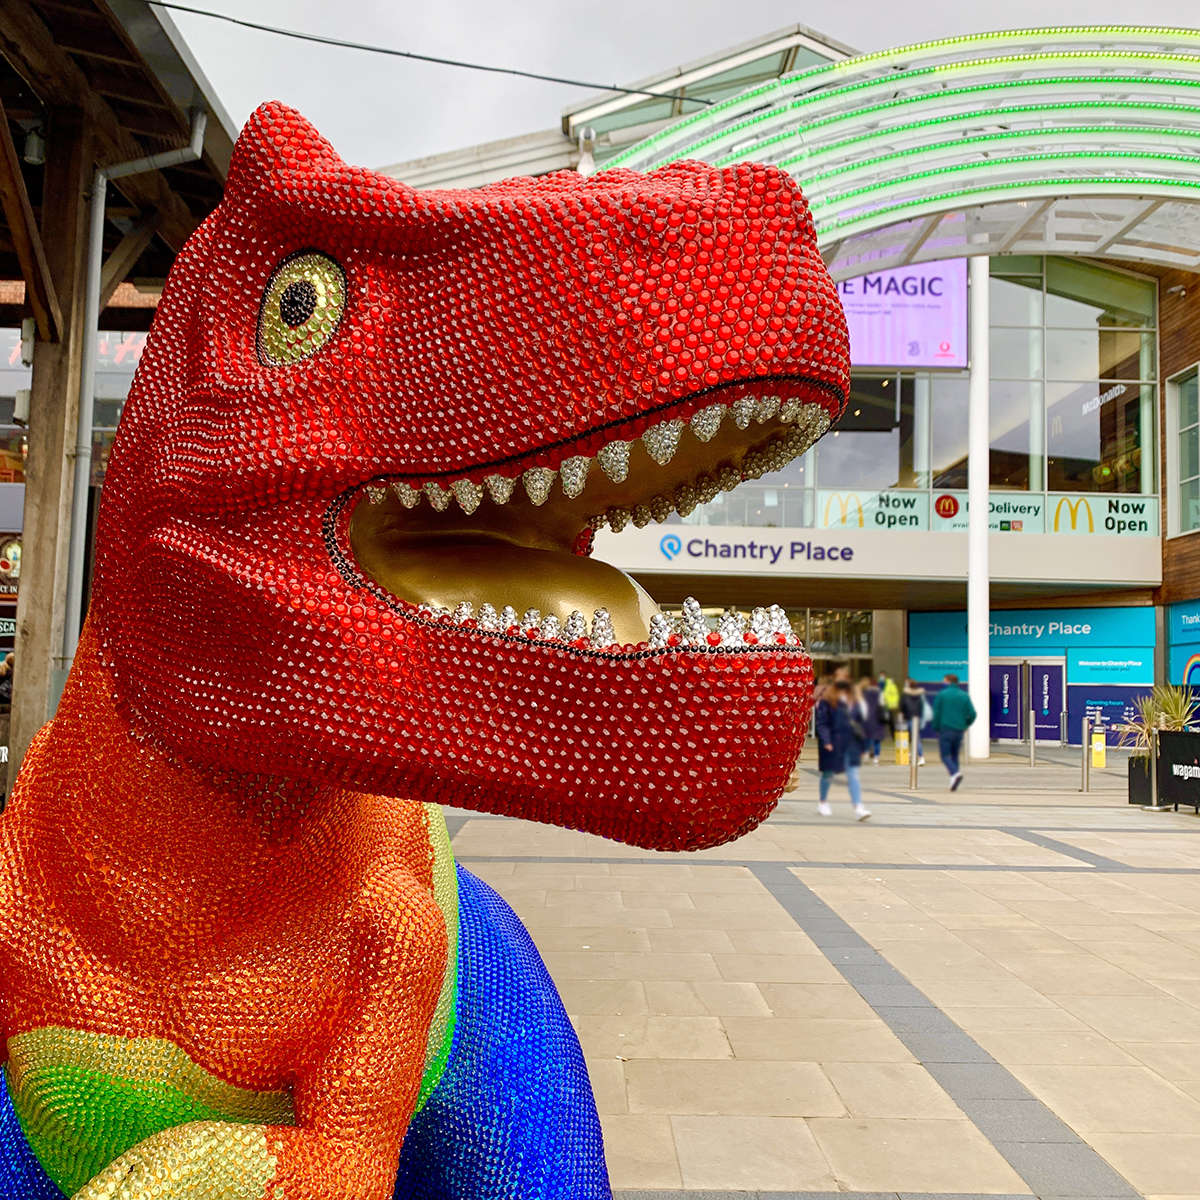 FOUR Helps Break Unmask First T.rex Ahead Of GoGoDiscover Trail